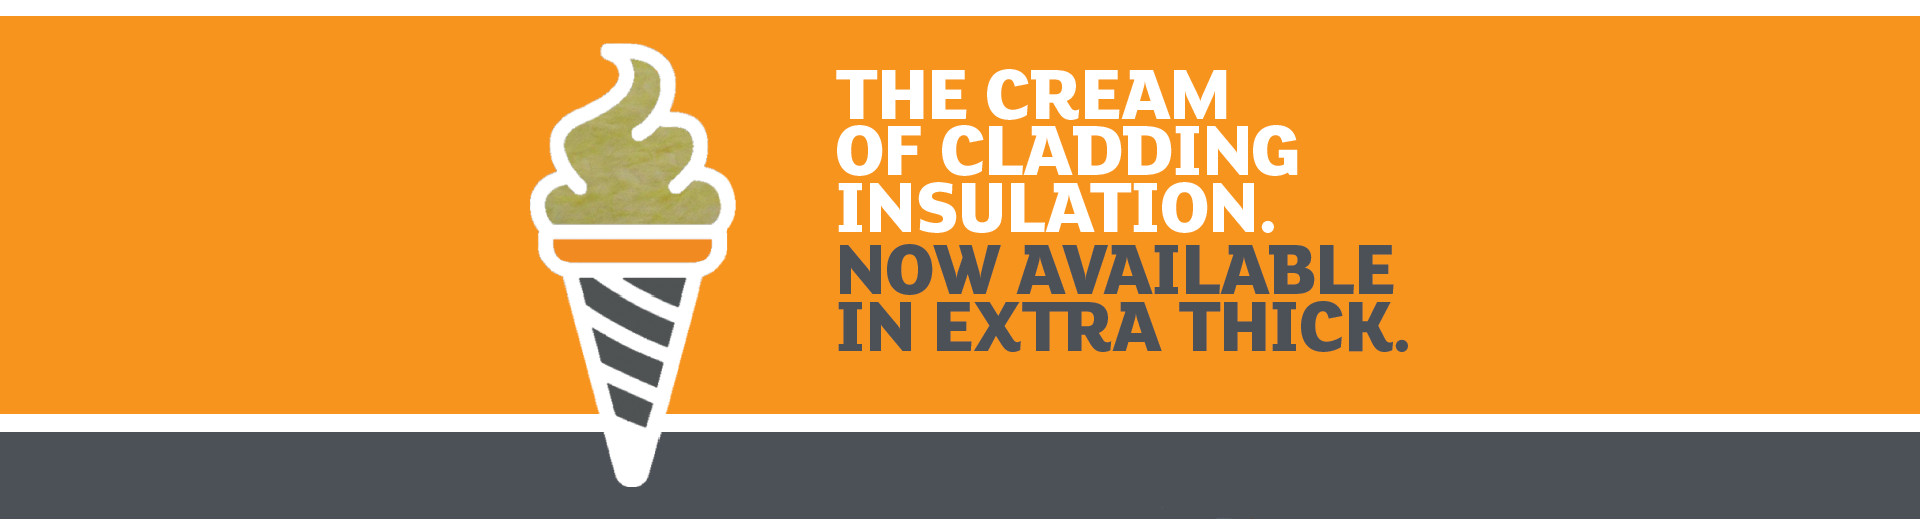 The cream of cladding insulation. Now available in extra thick